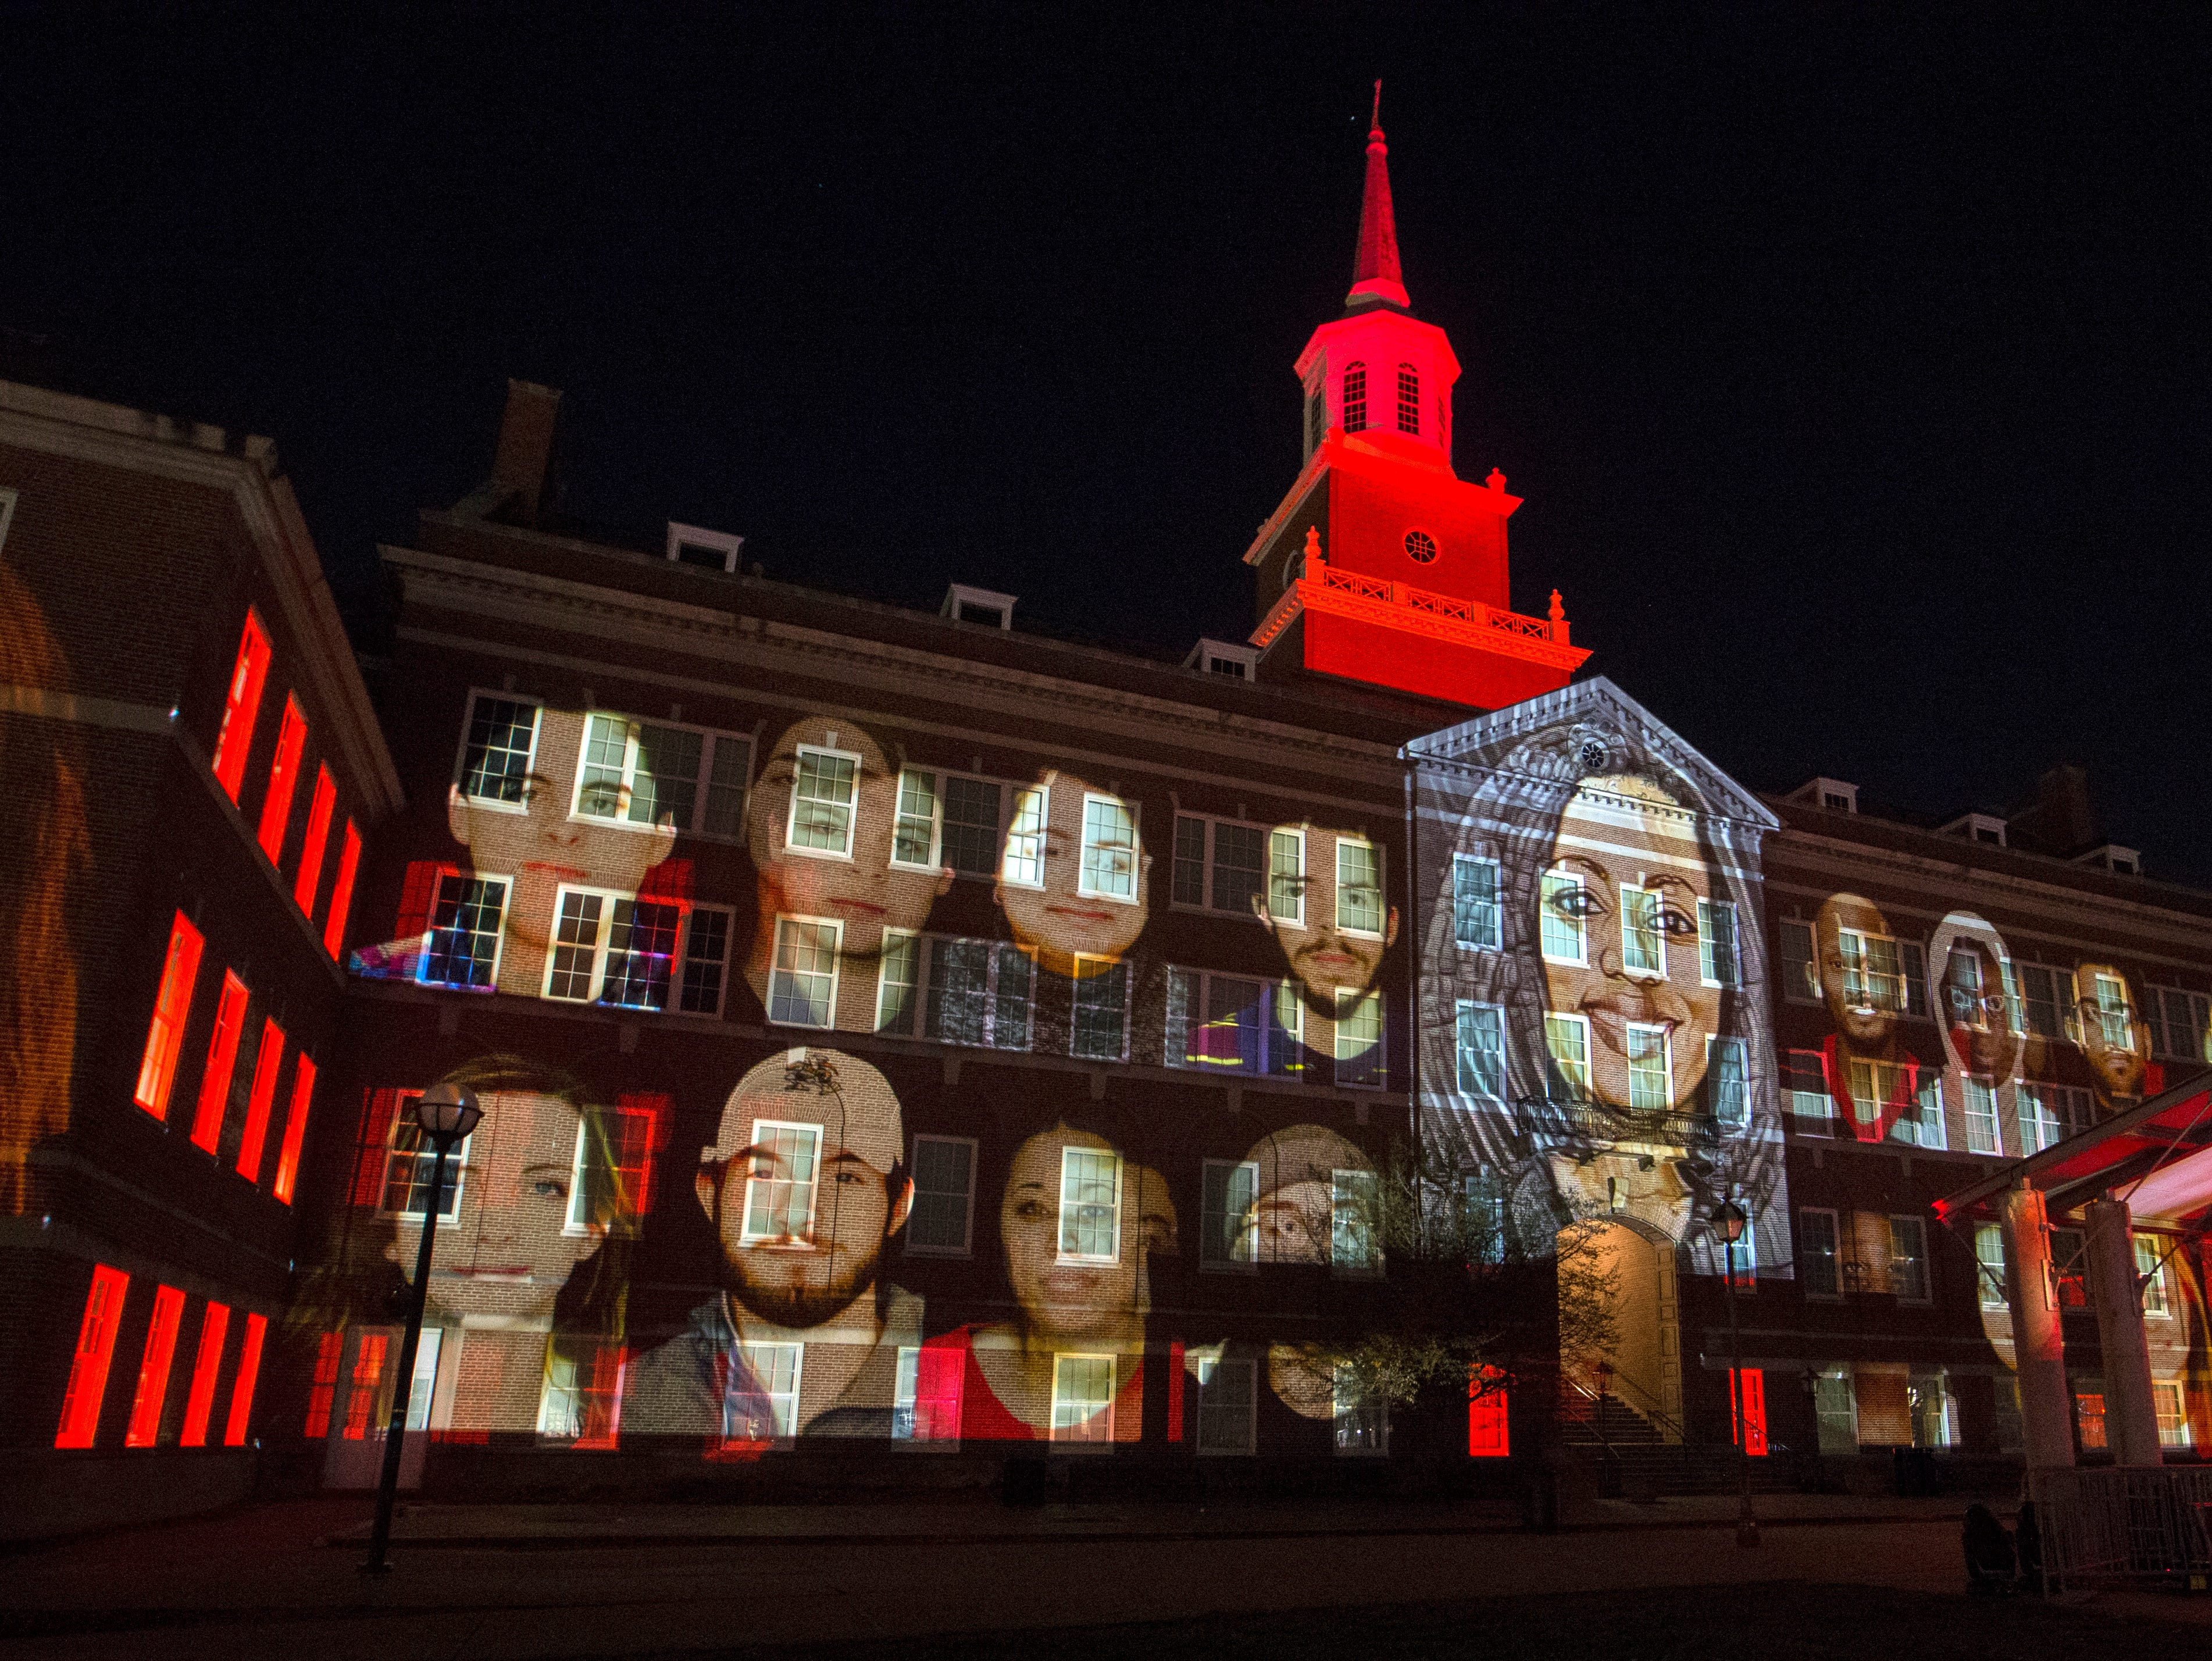 University of Cincinnati Faculties and Students images displayed on McMicken Hall during Community Day to celebrate UC's Bicentennial Saturday April 6, 2019 at McMicken Commons on the campus of the University of Cincinnati. University of Cincinnati/Joseph Fuqua II